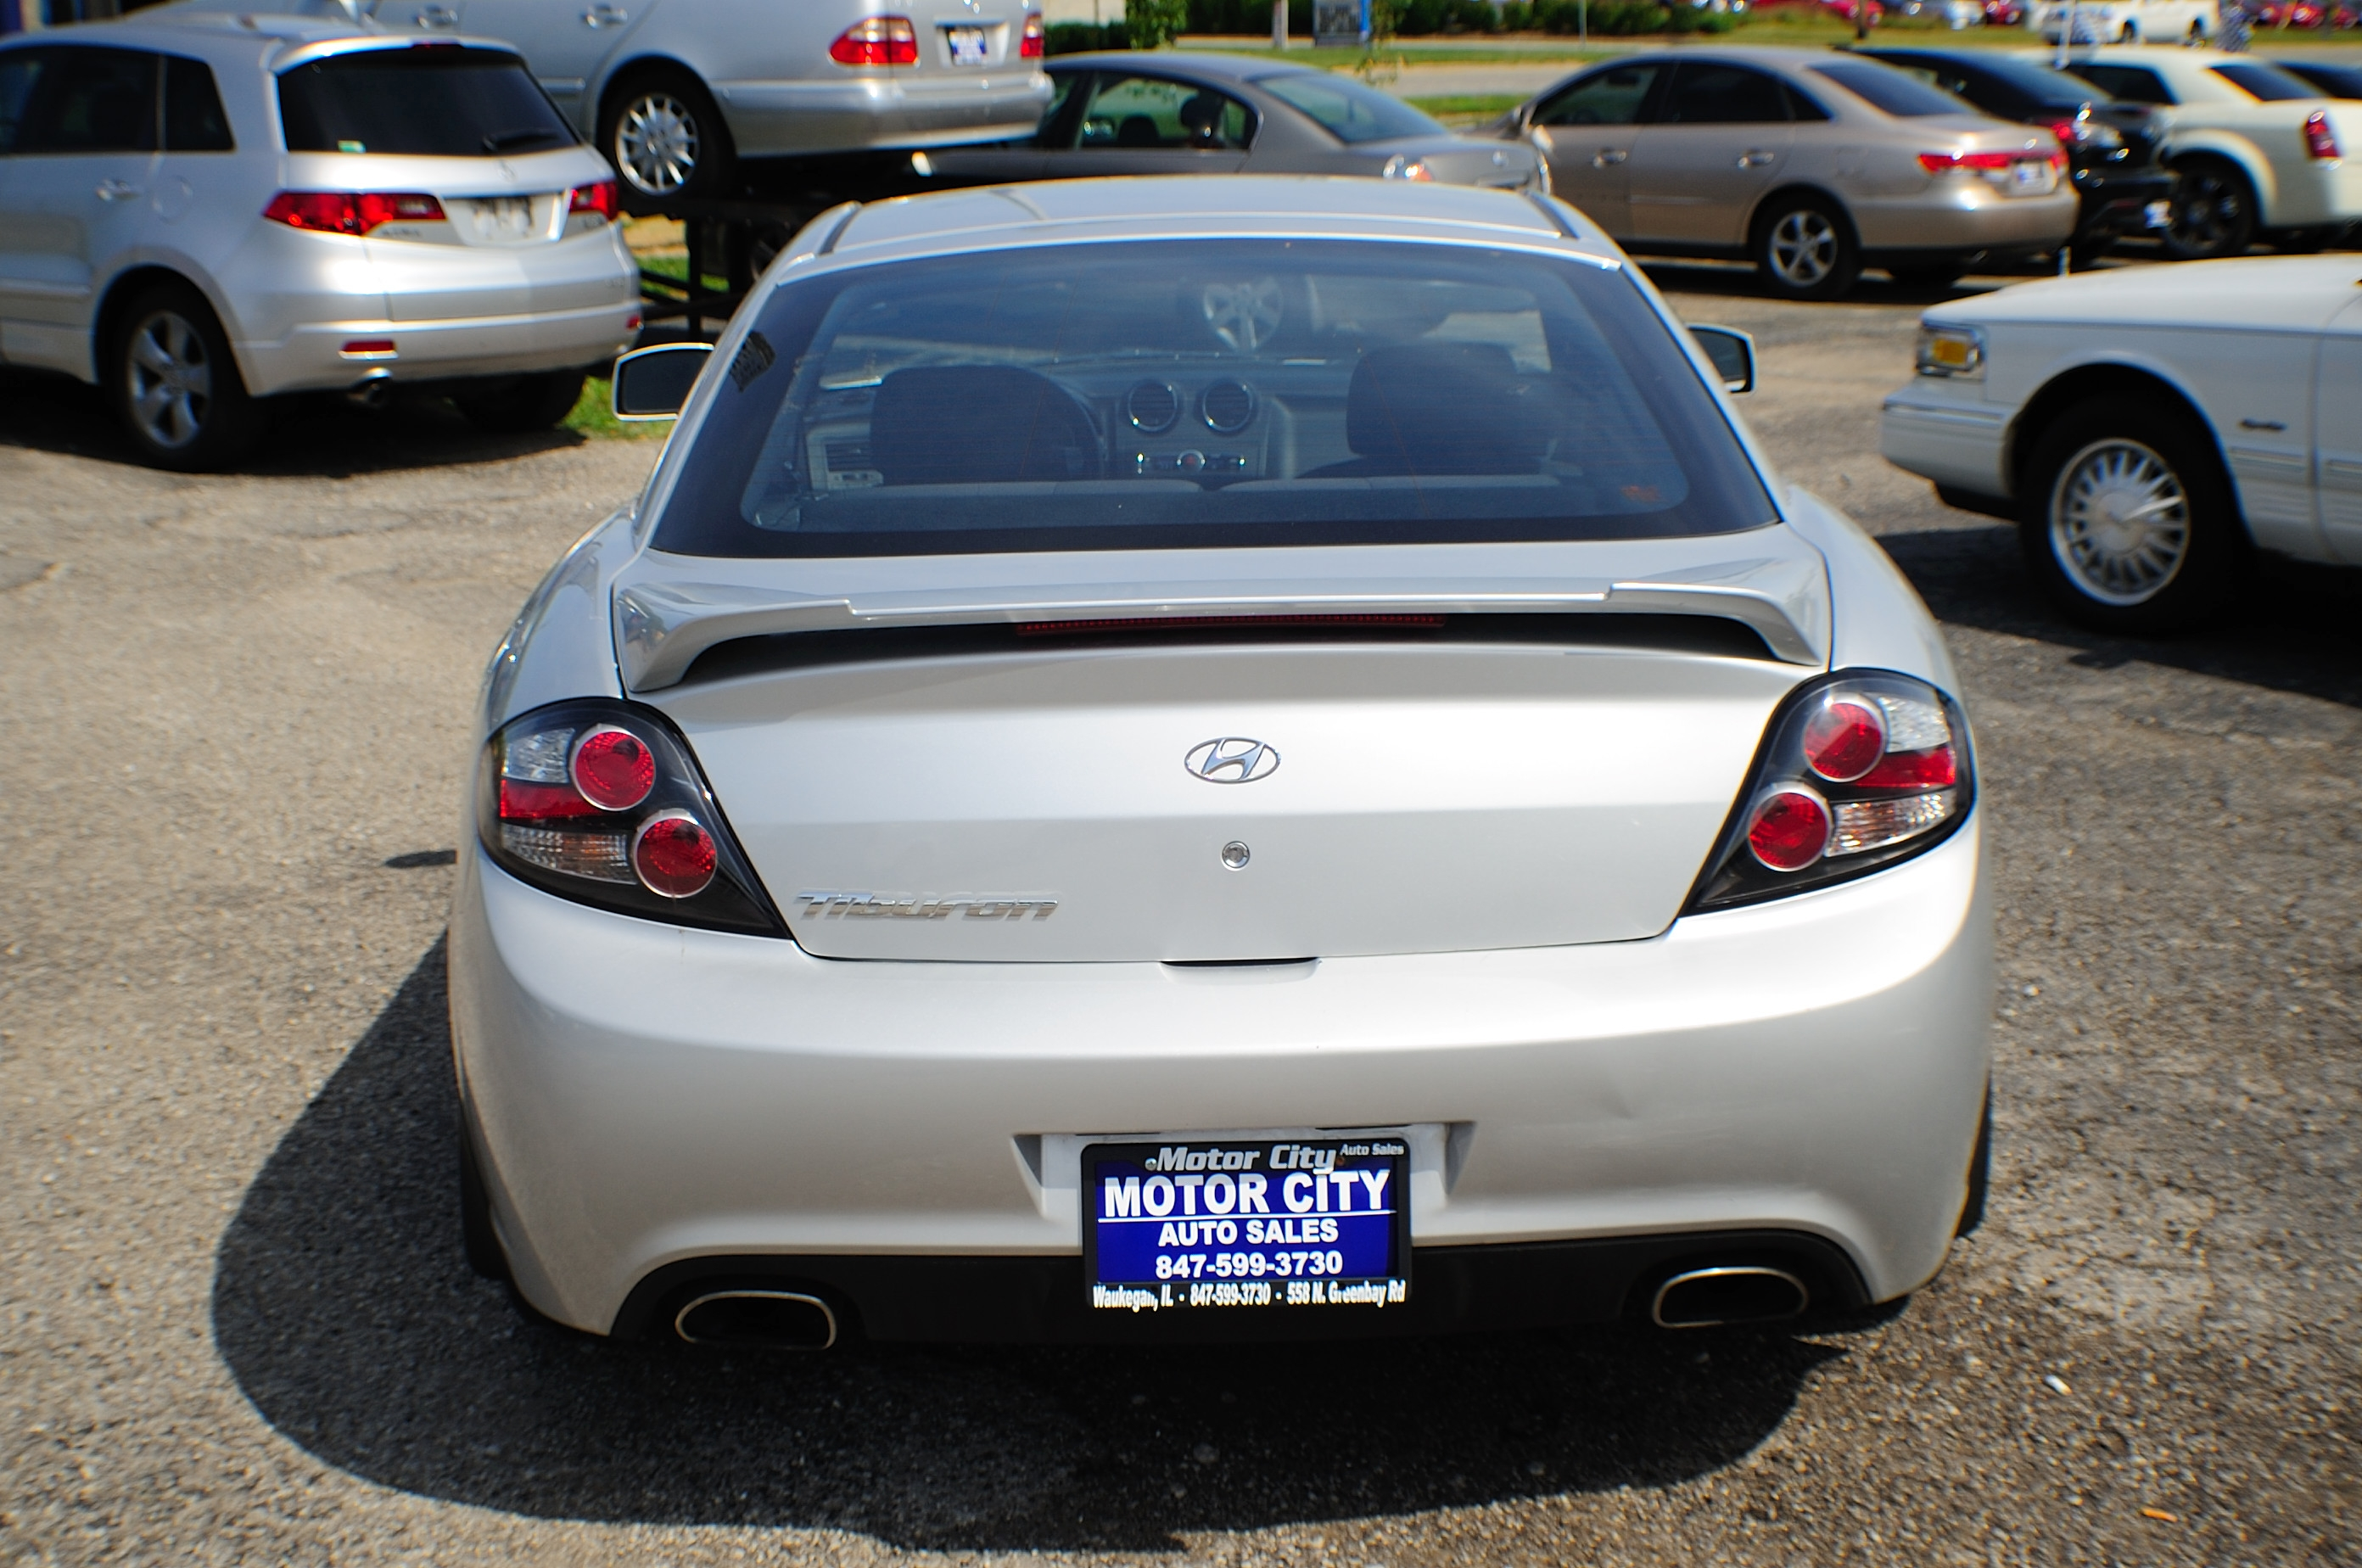 2008 Hyundai Tiberon GS Silver Sport Coupe Used Car Sale Waukegan Kenosha